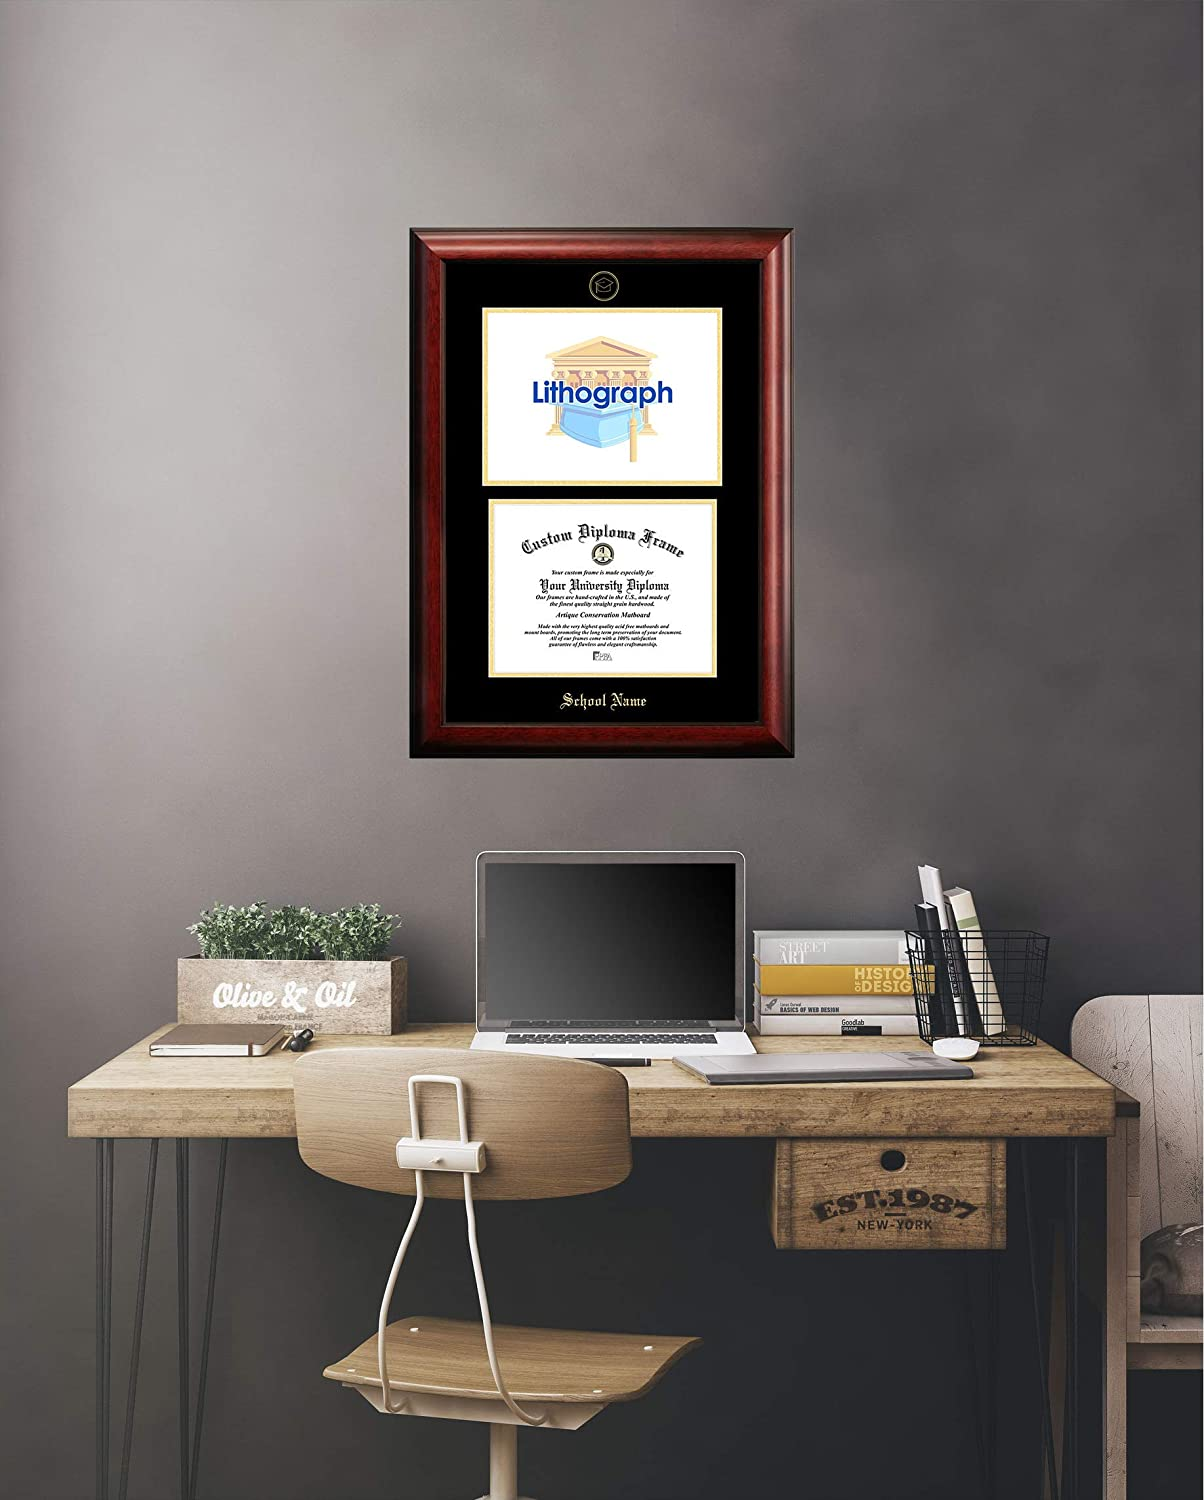 Gold 14 x 17 14 x 17 Campus Images DC996LGED Georgetown University Embossed Diploma Frame with Lithograph Print